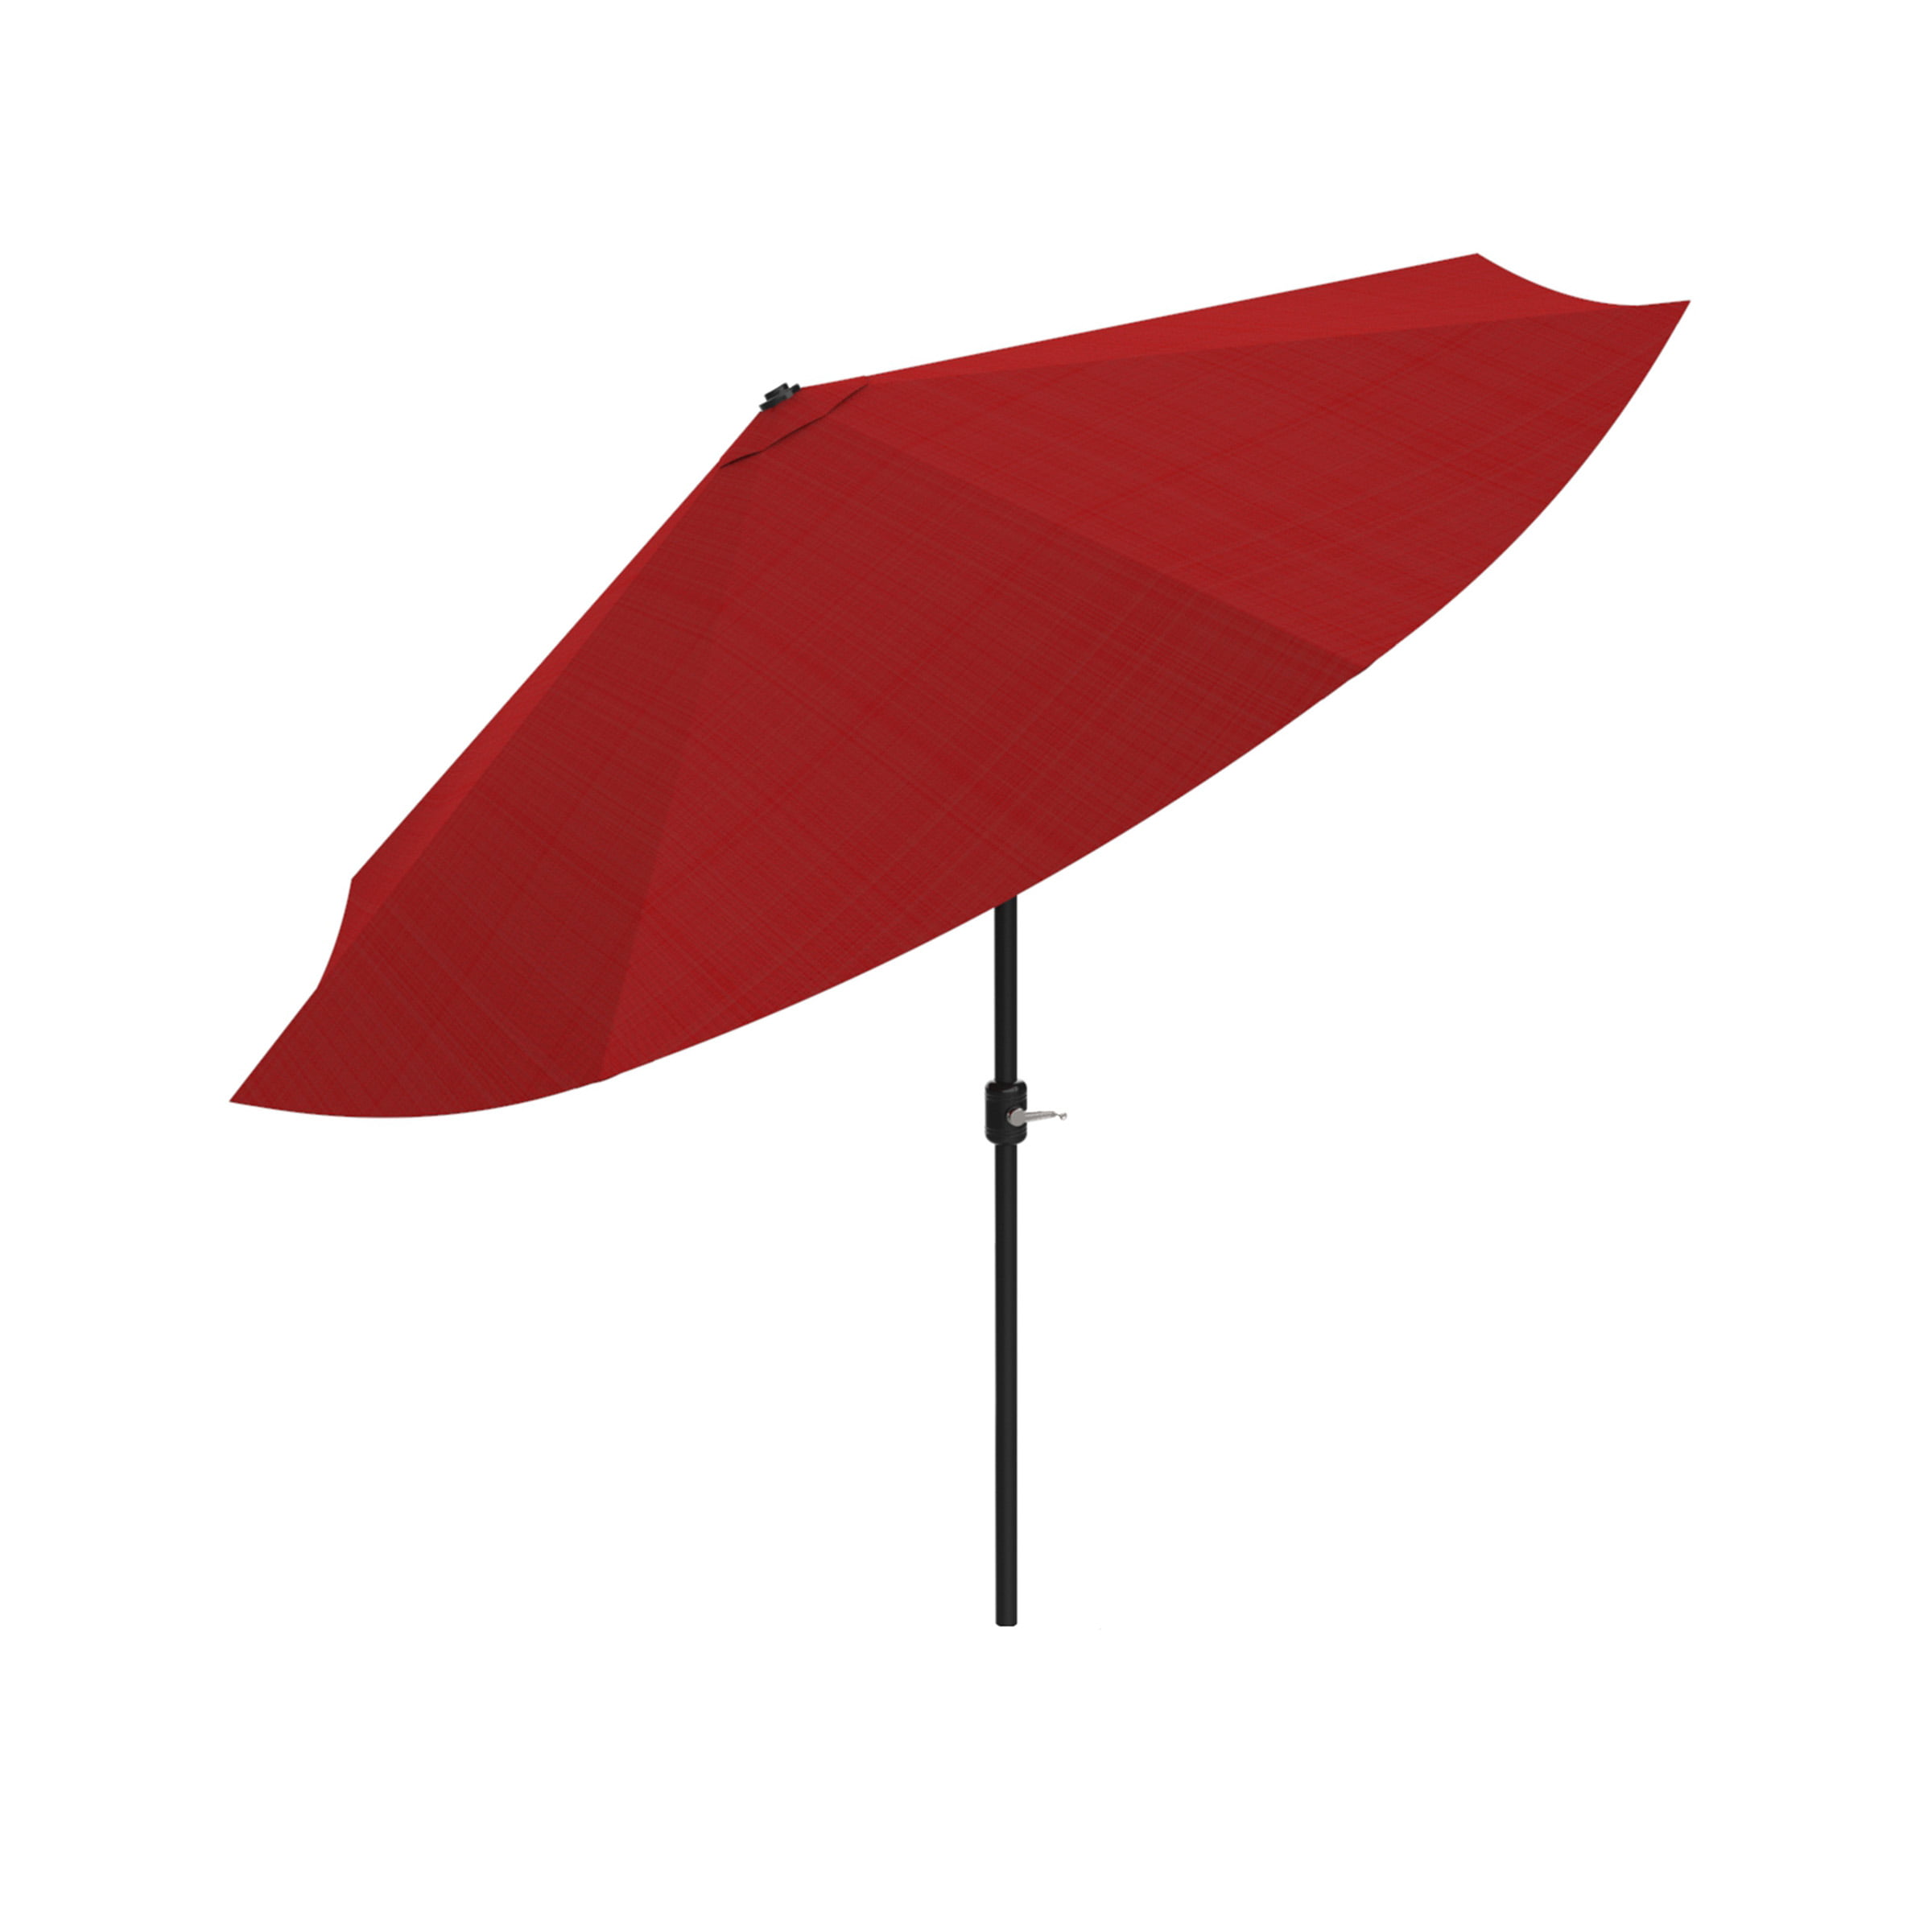 Patio Umbrella, Shade with Easy Crank and Auto Tilt Outdoor Table Umbrella for Deck,... by Trademark Global LLC